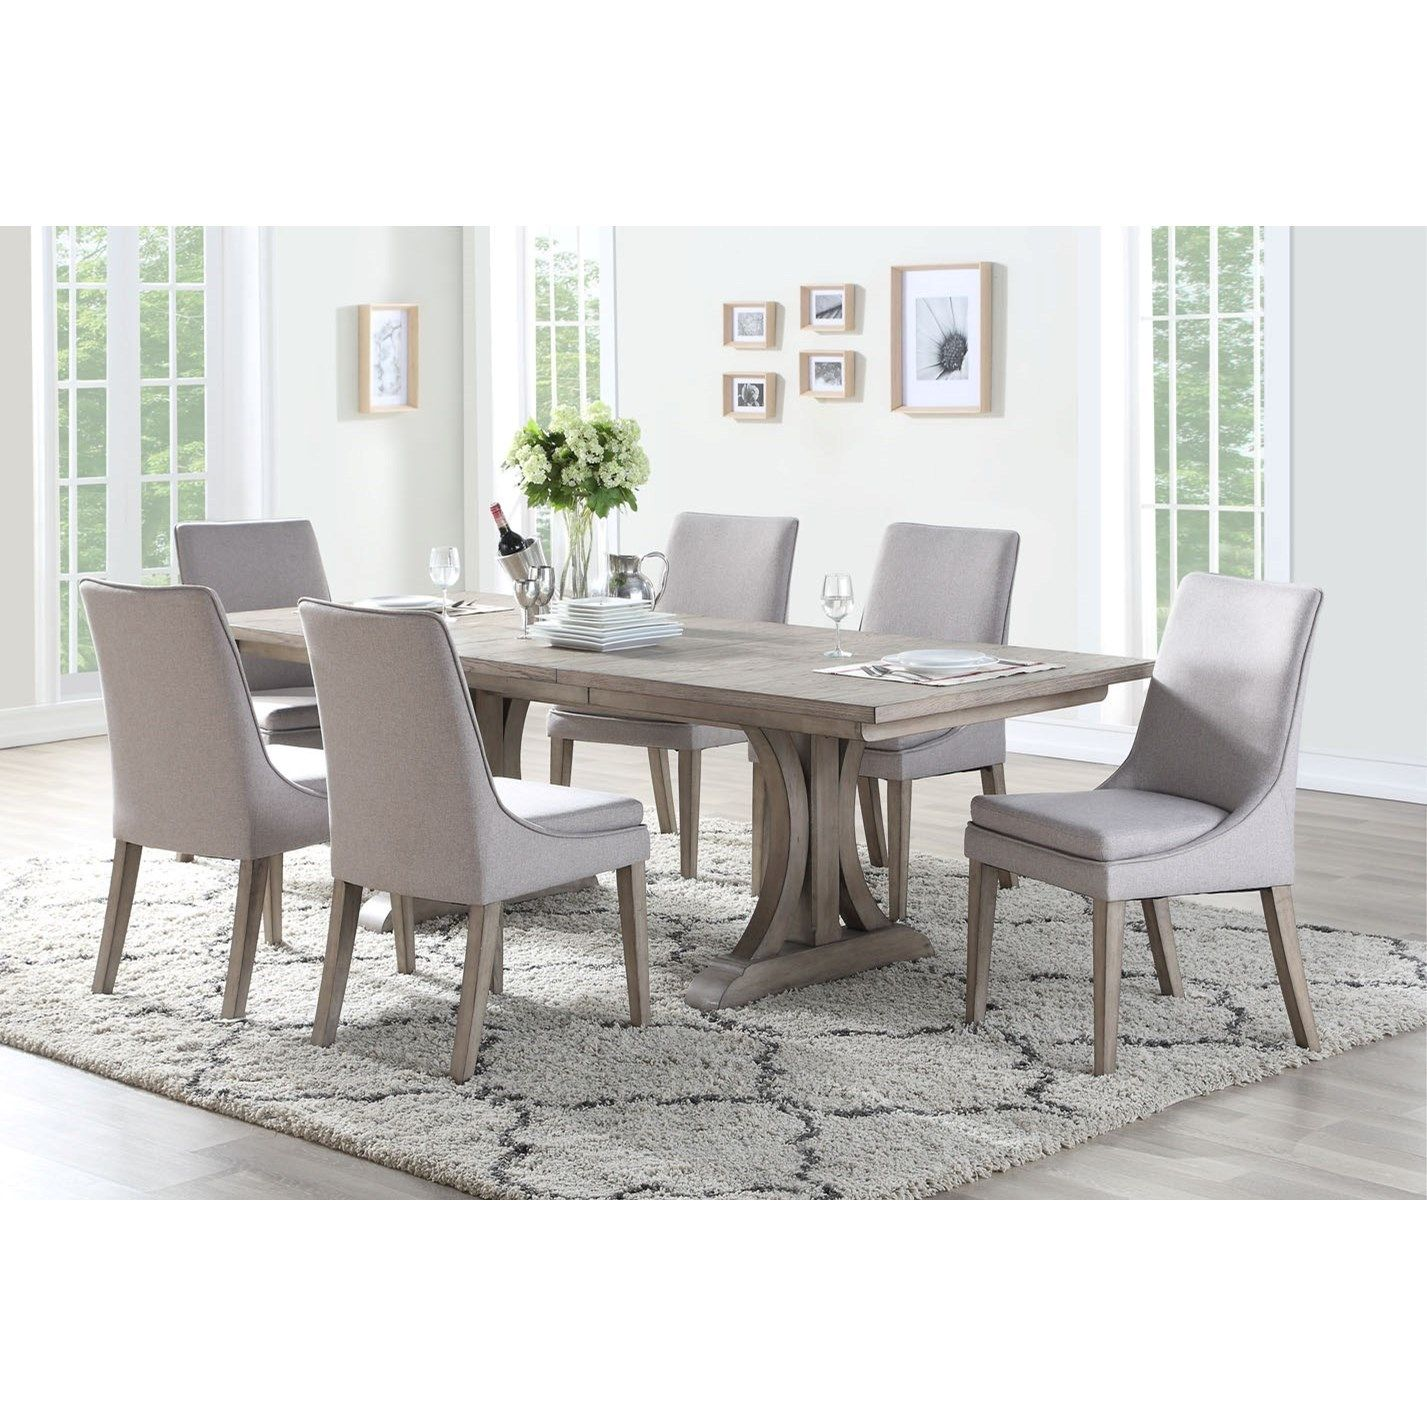 Xena Transitional 7 Pc Dining Set By Winners Only Dining Room